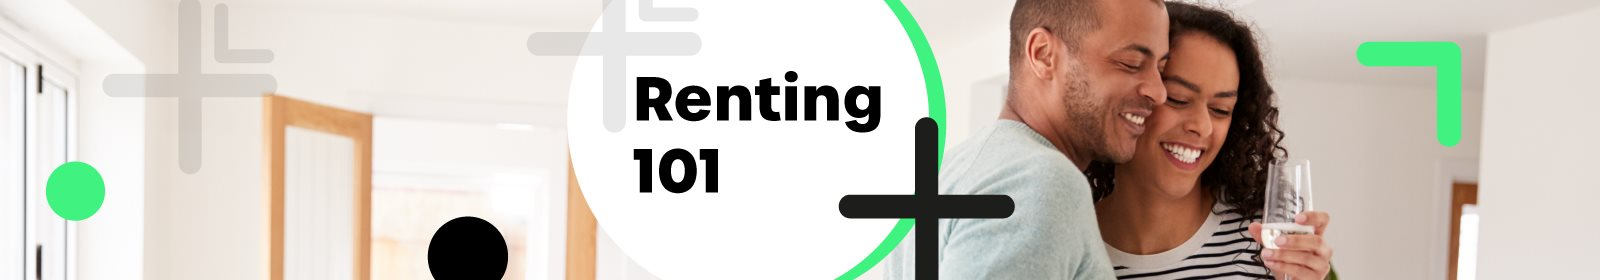 Renters guide: A guide for tenants